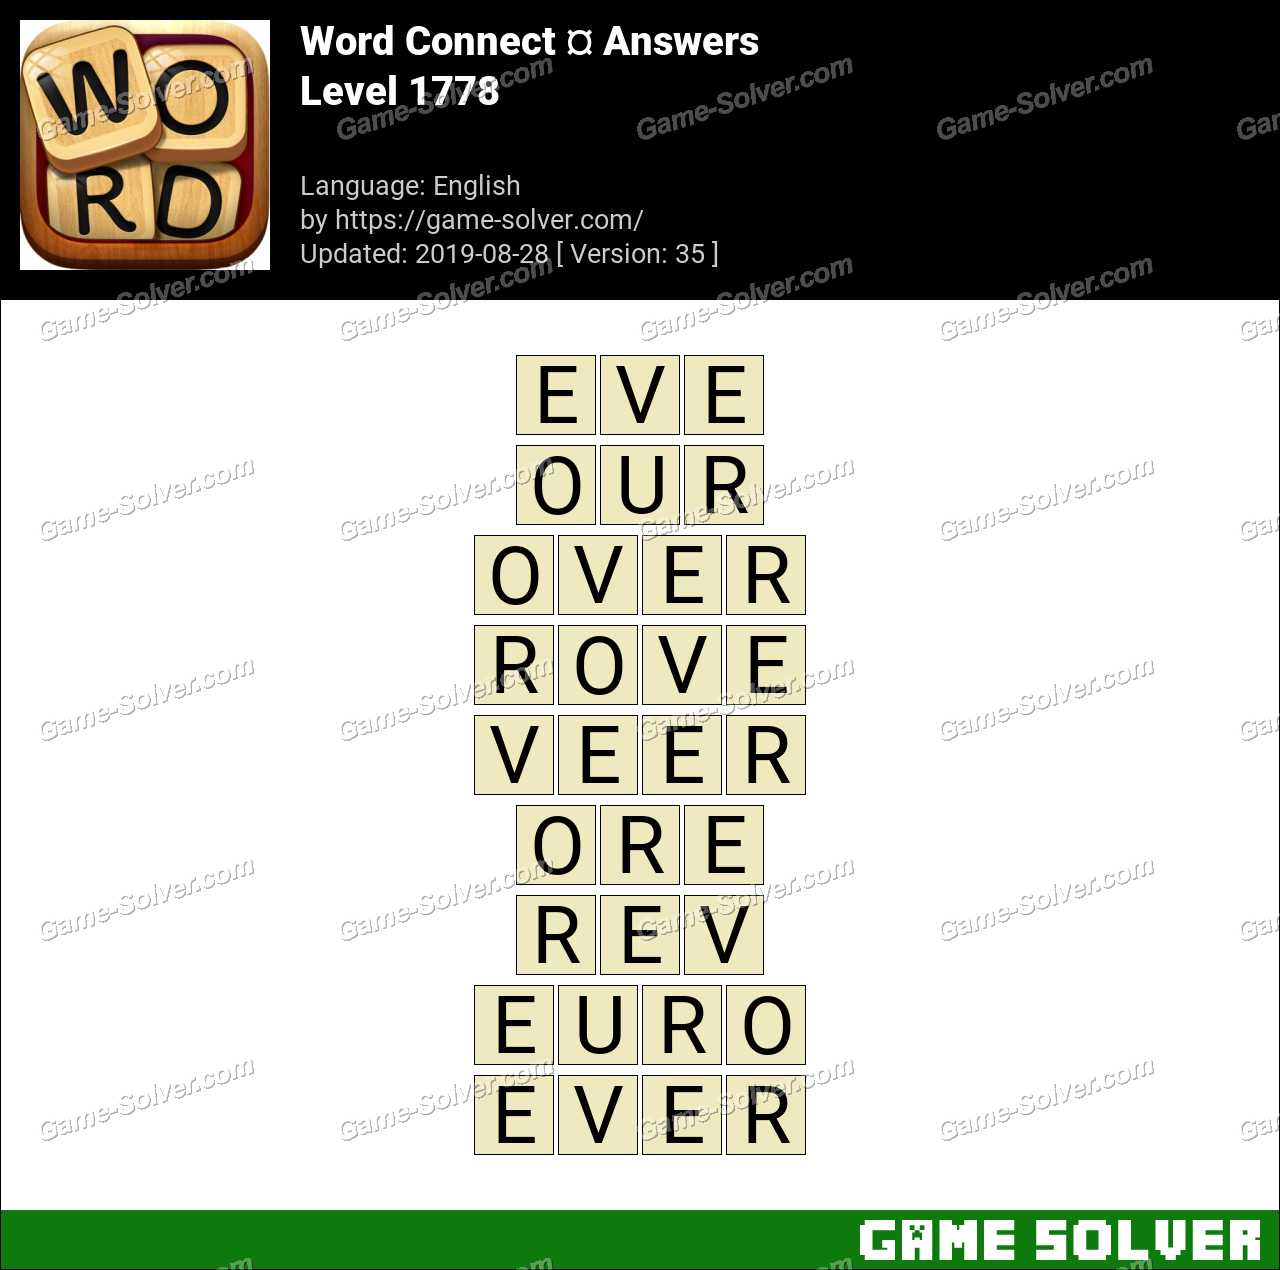 Word Connect Level 1778 Answers